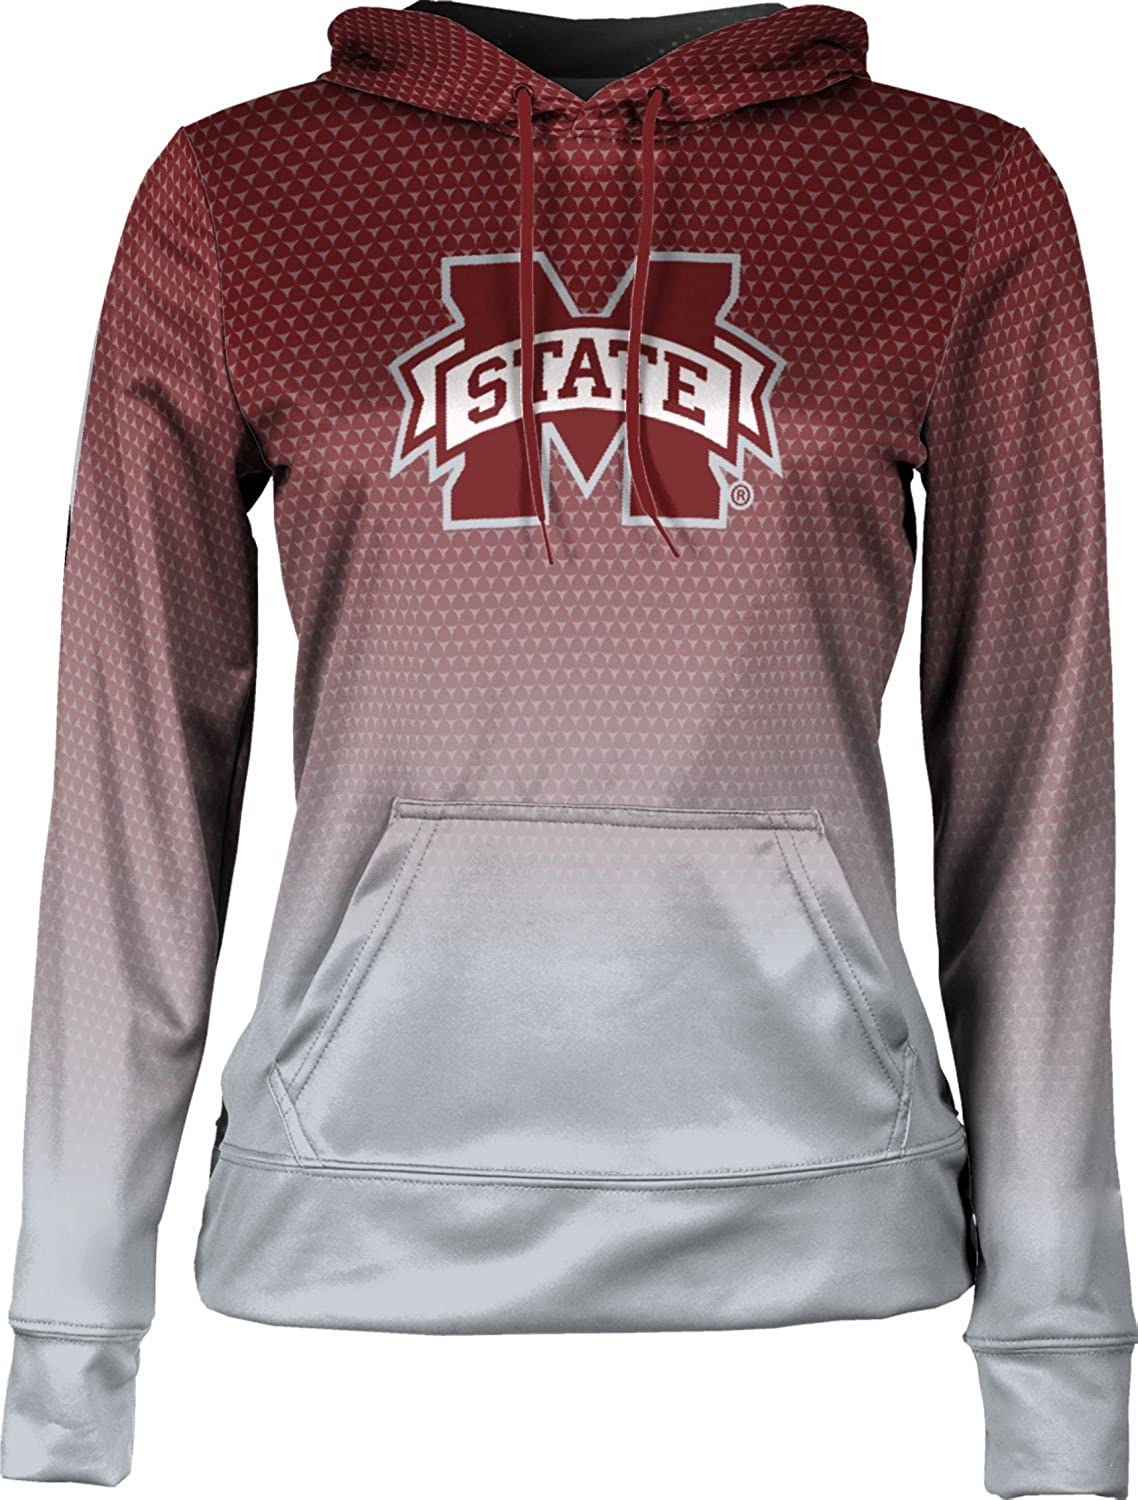 Zoom ProSphere Mississippi State University Girls Zipper Hoodie School Spirit Sweatshirt